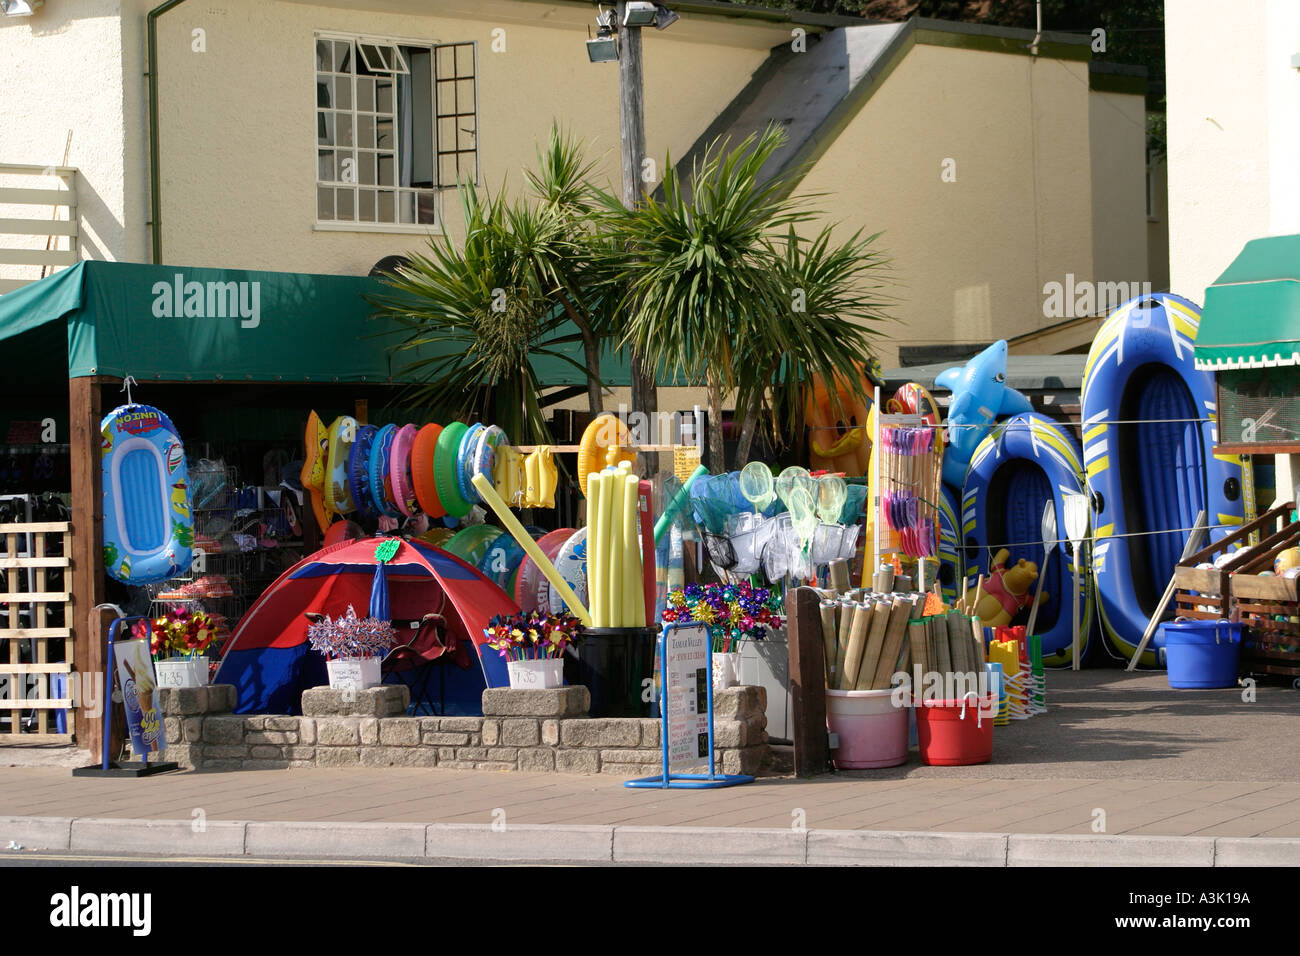 Beach goods on sale at seaside resort Exmouth Devon England UK Stock Photo